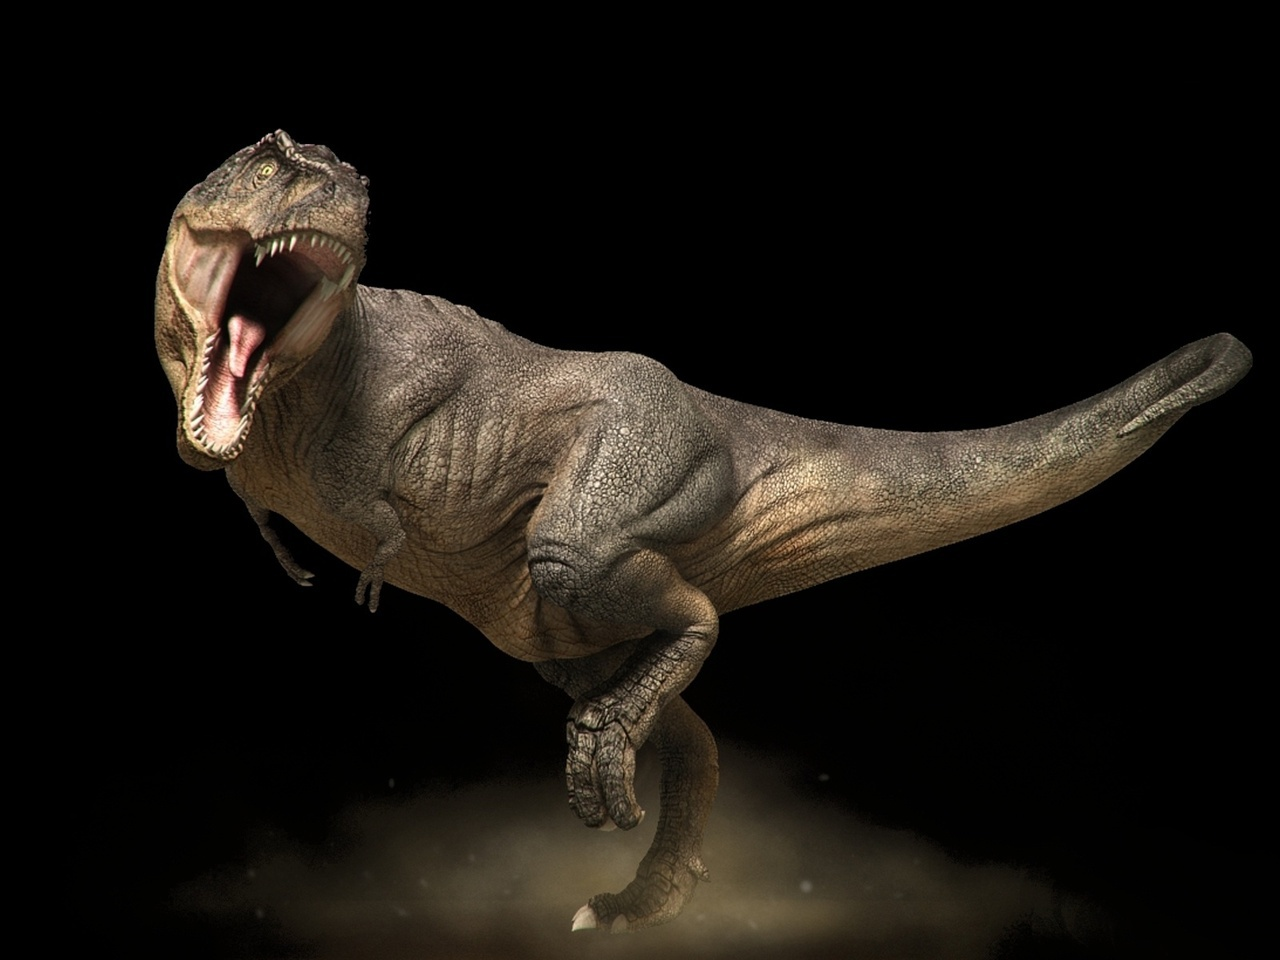 36623 download wallpaper Animals, Dinosaurs screensavers and pictures for free